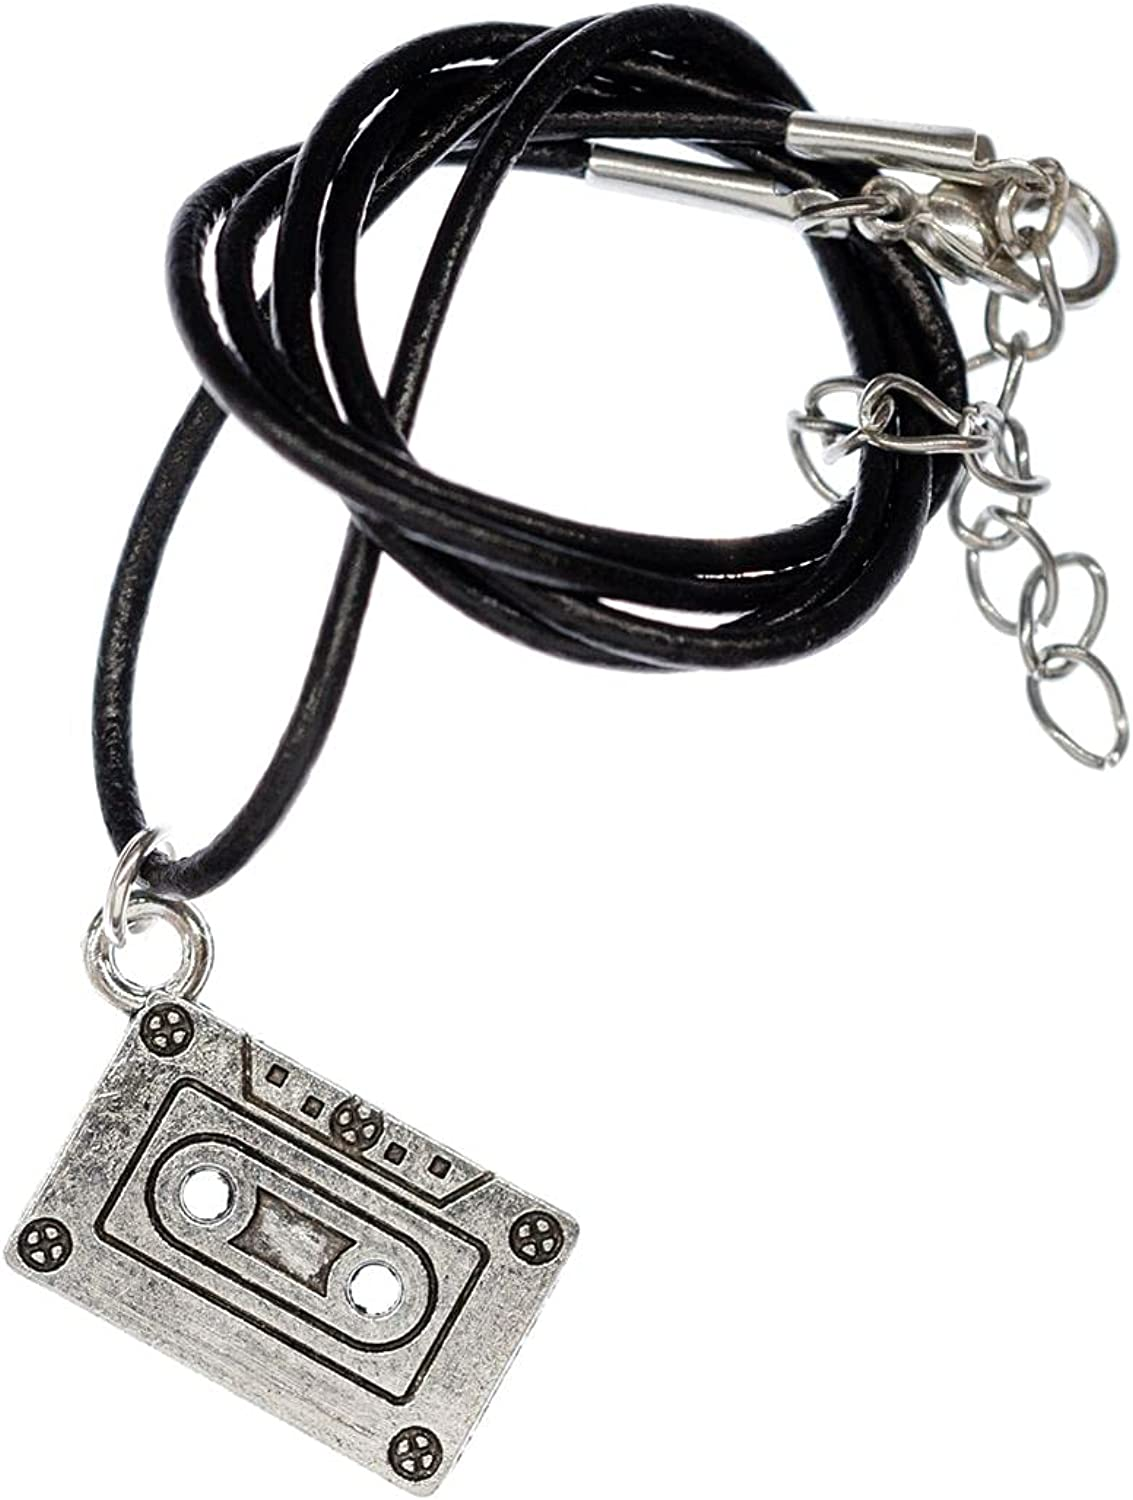 Miniblings Cassette Necklace Tape Record DJ Singer Music - Handmade Fashion Jewelry - Leather